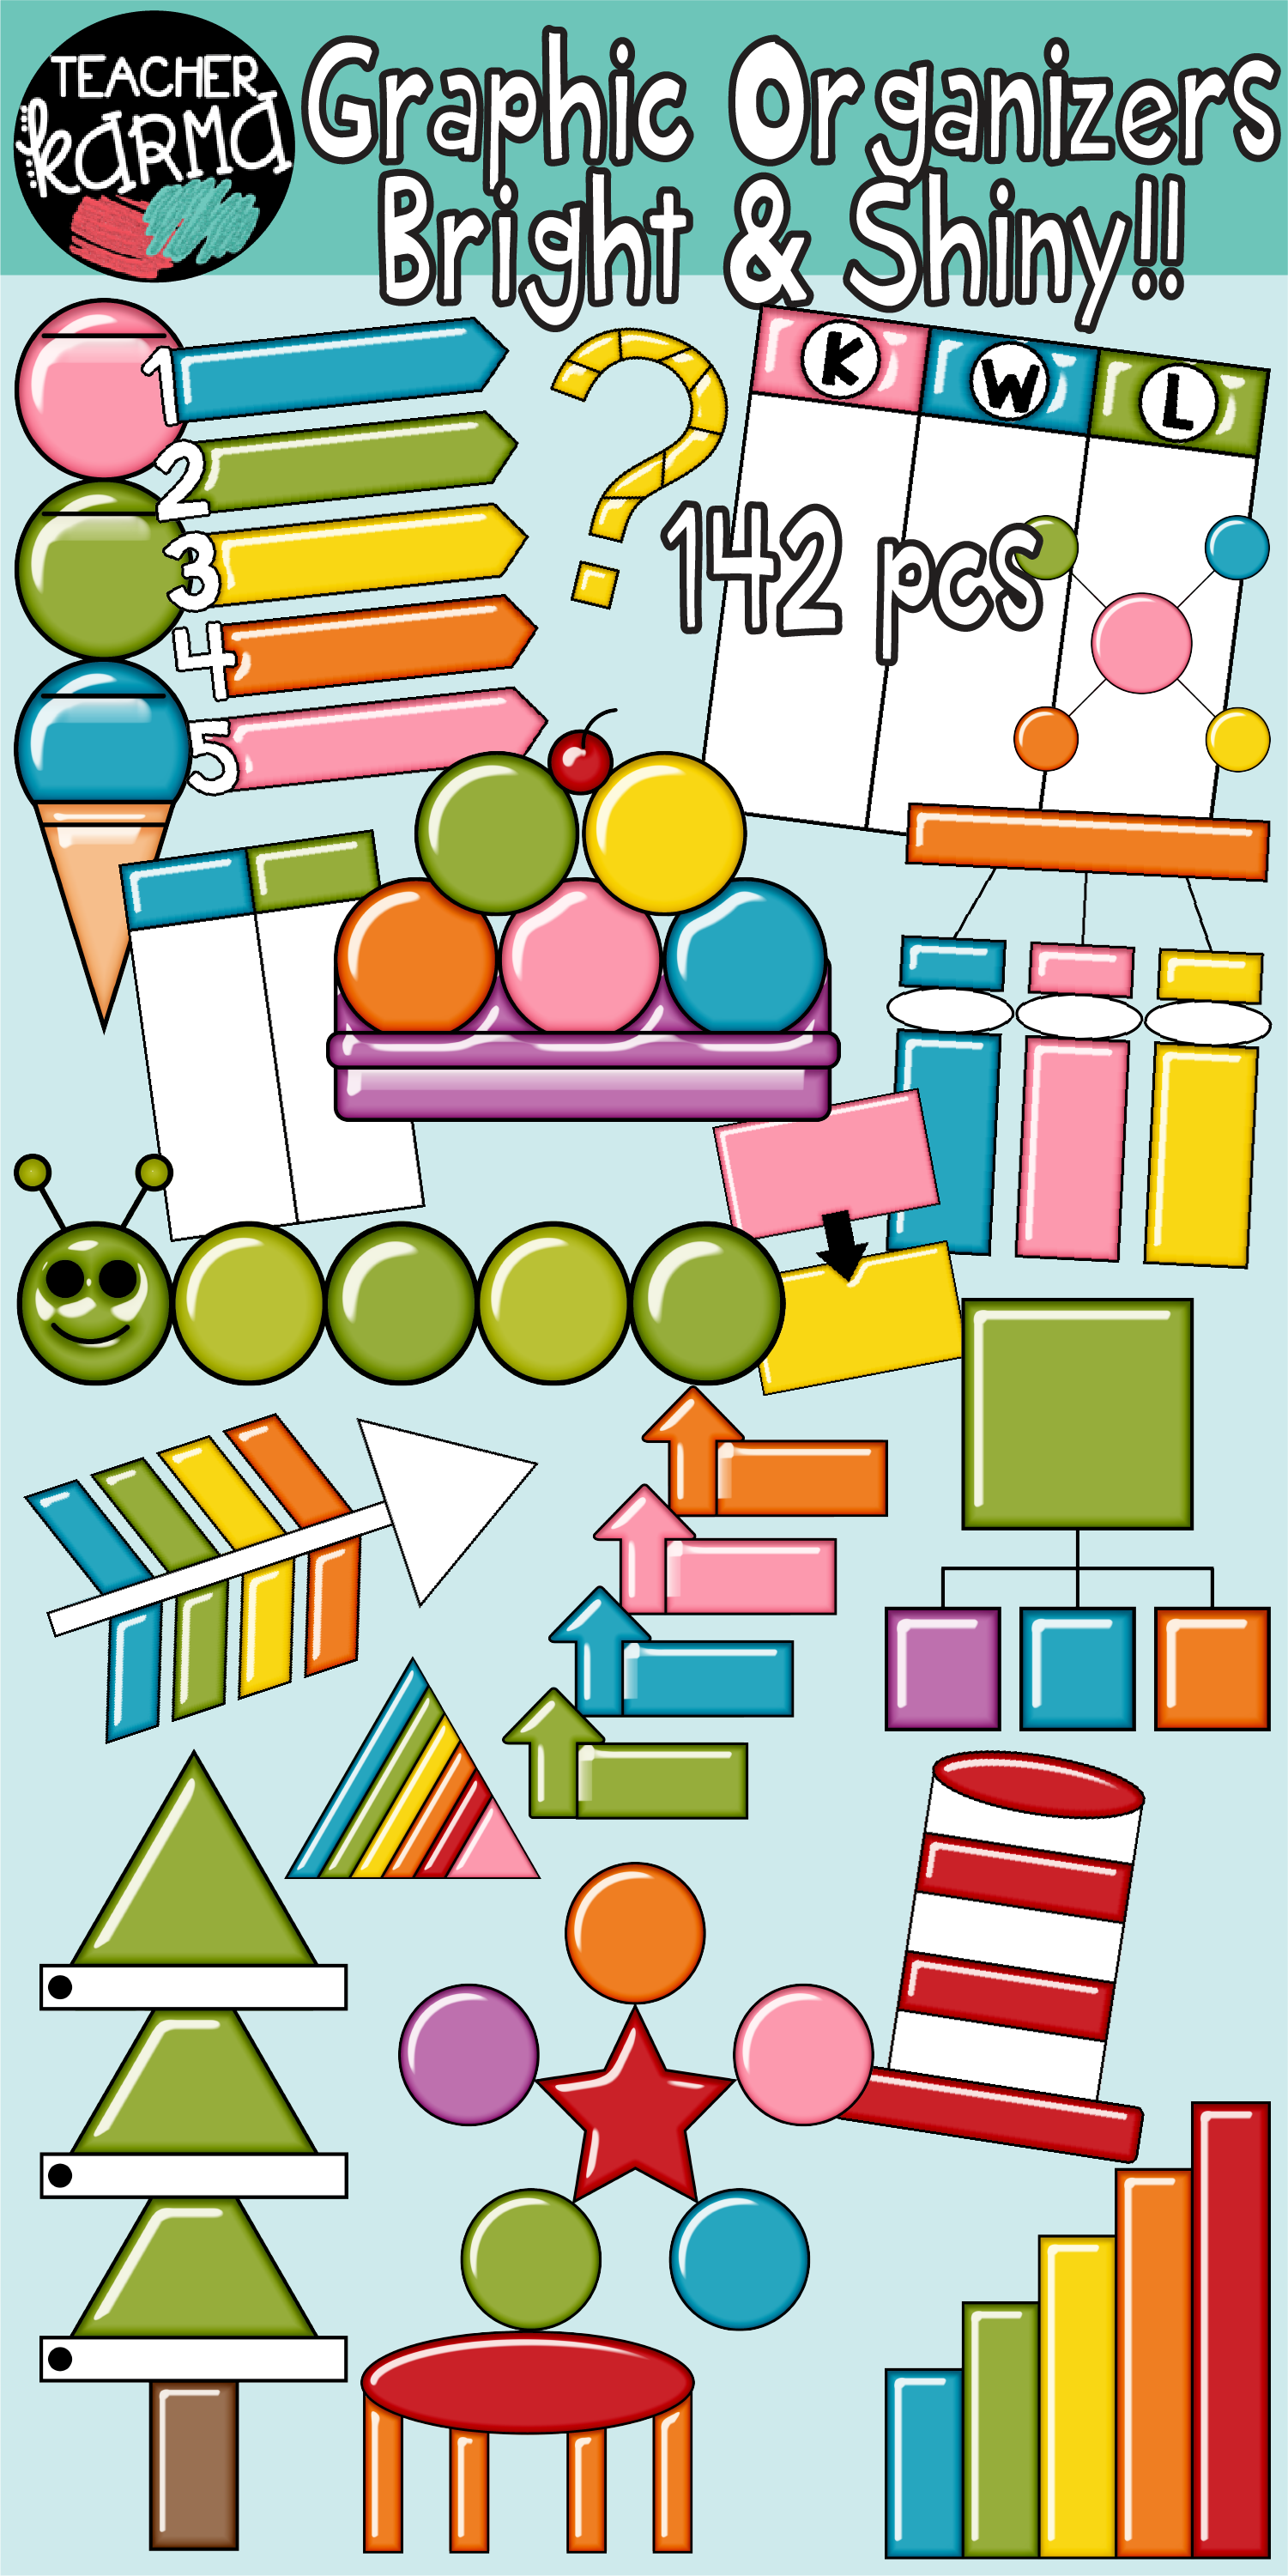 Classroom organizer clipart svg freeuse stock Graphic Organizers Clipart BUNDLE | TK Clipart for Teachers ... svg freeuse stock